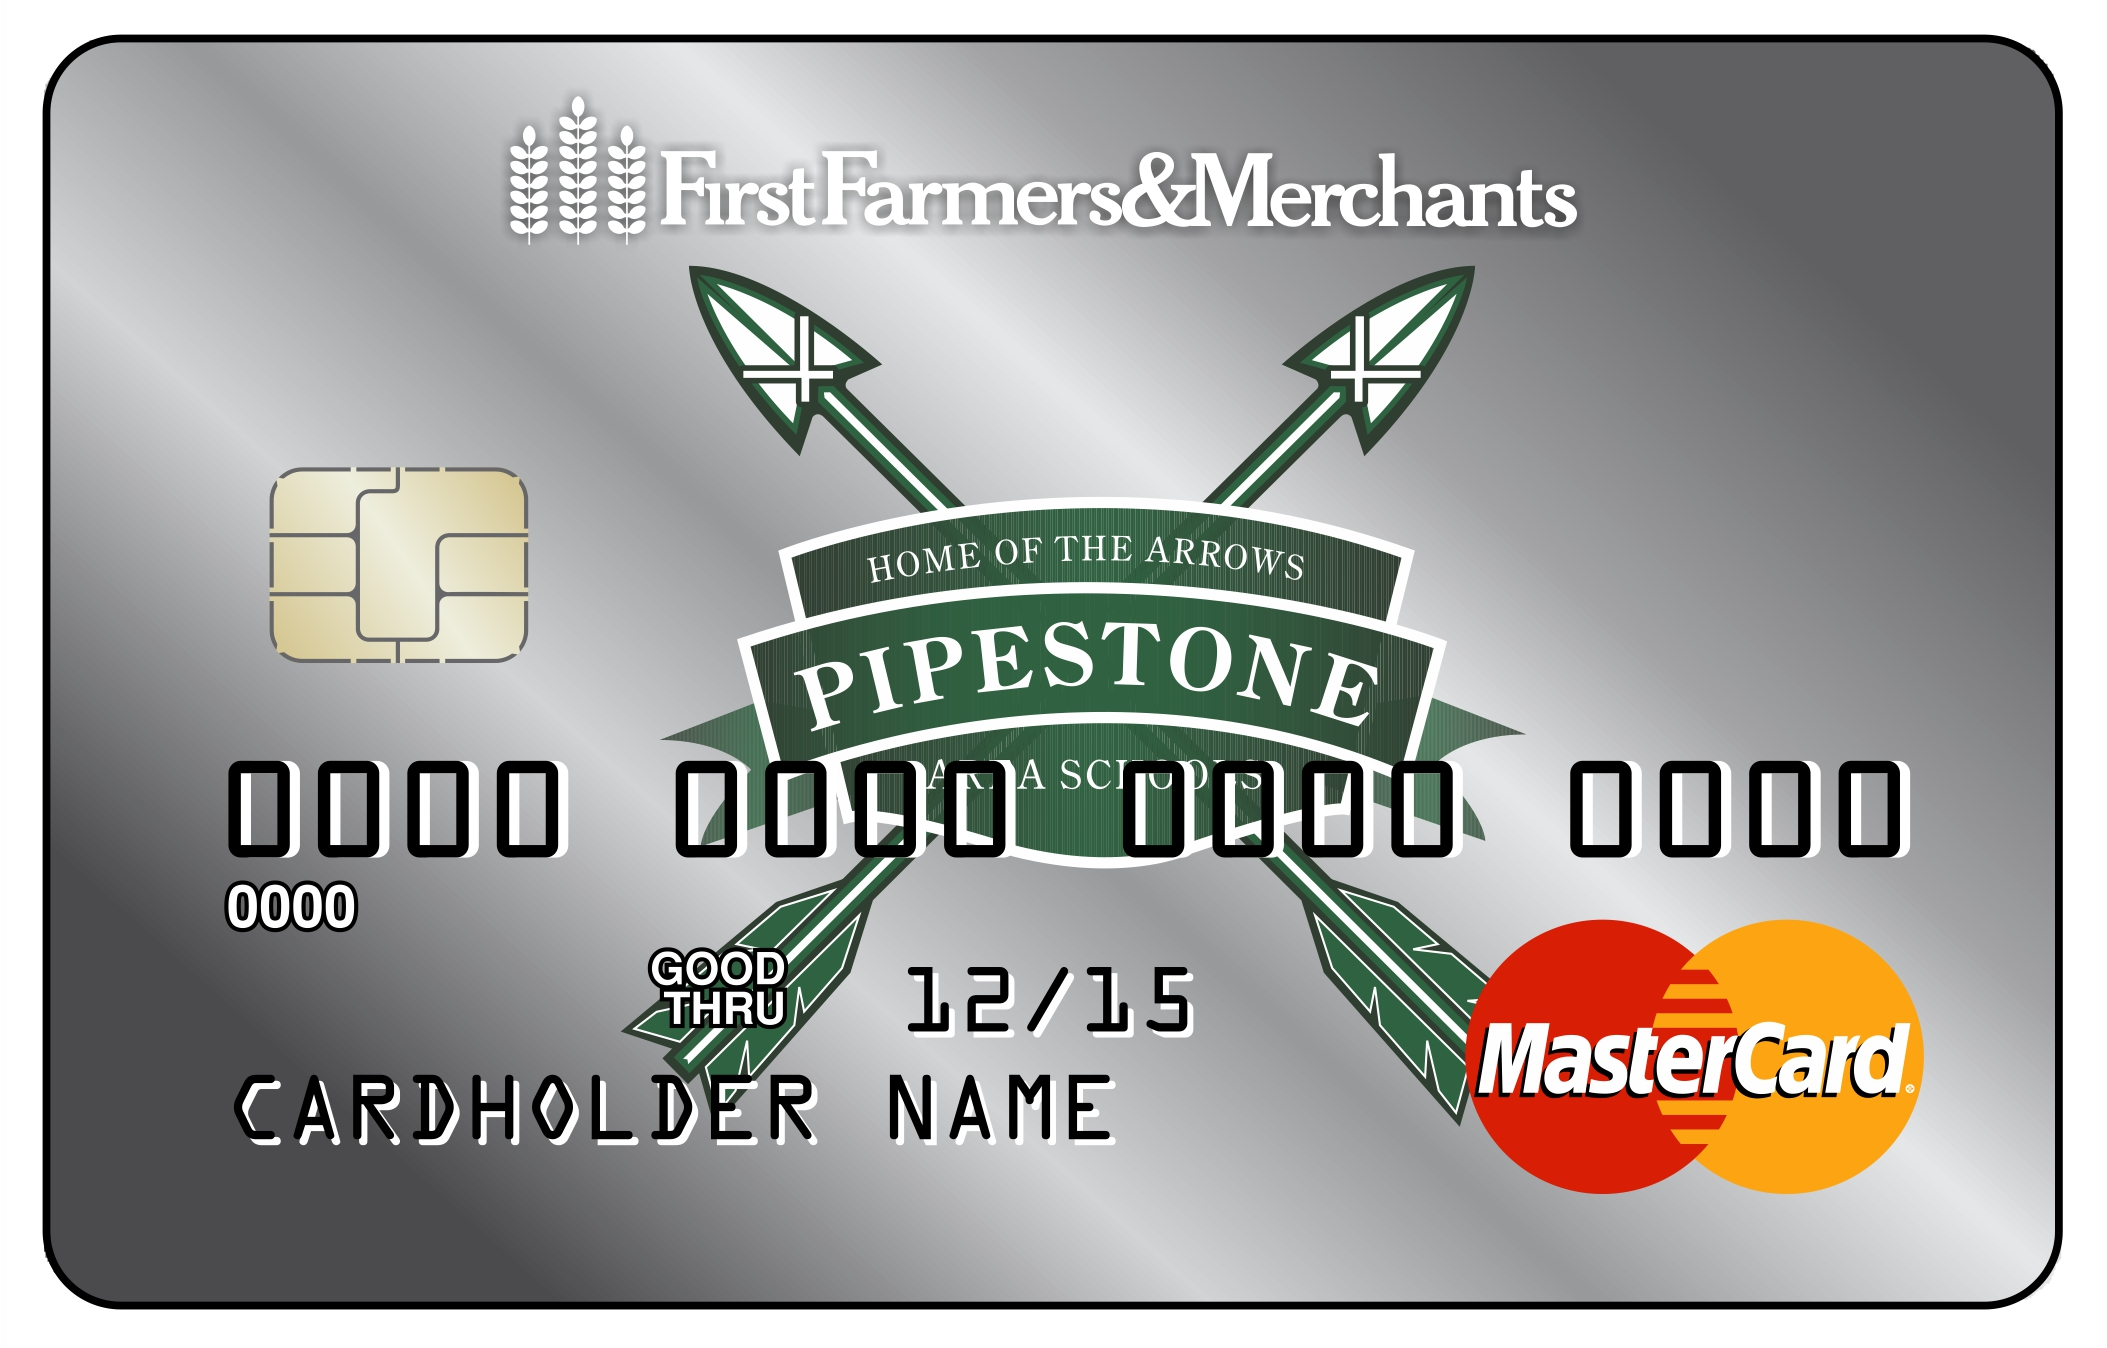 Image of Pipestone Arrows debit card